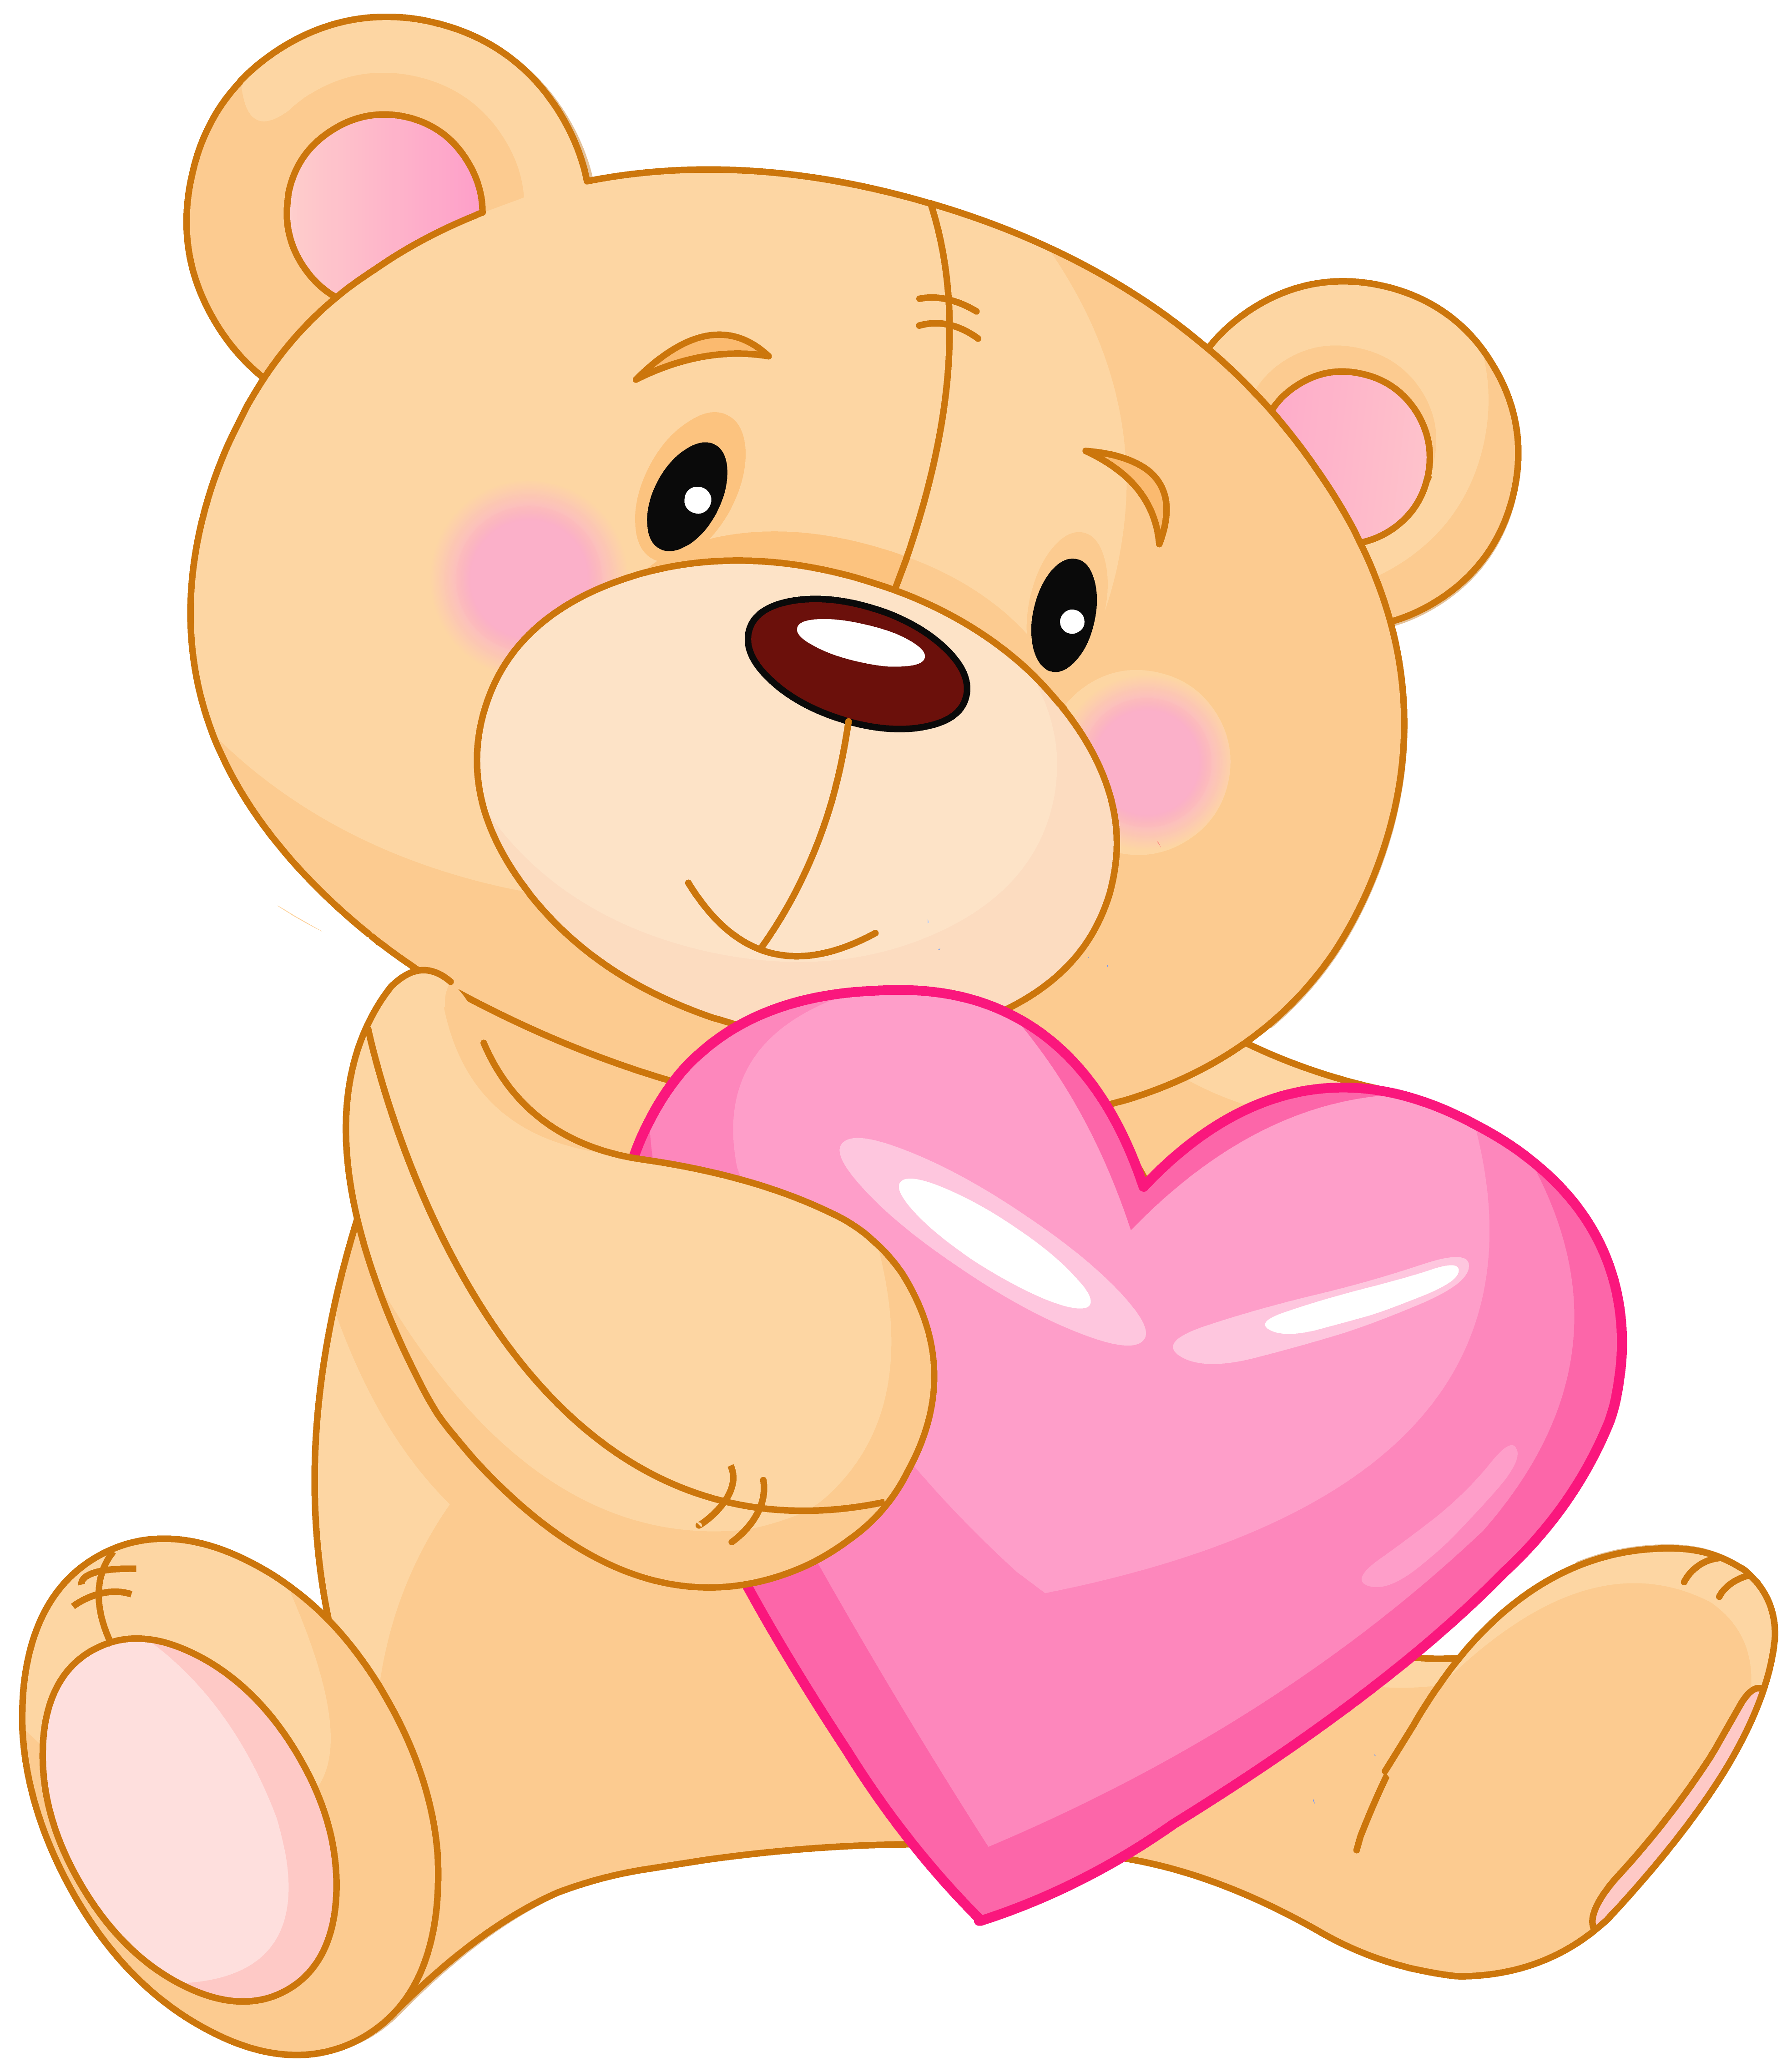 Hearts clipart cute. Transparent teddy with pink